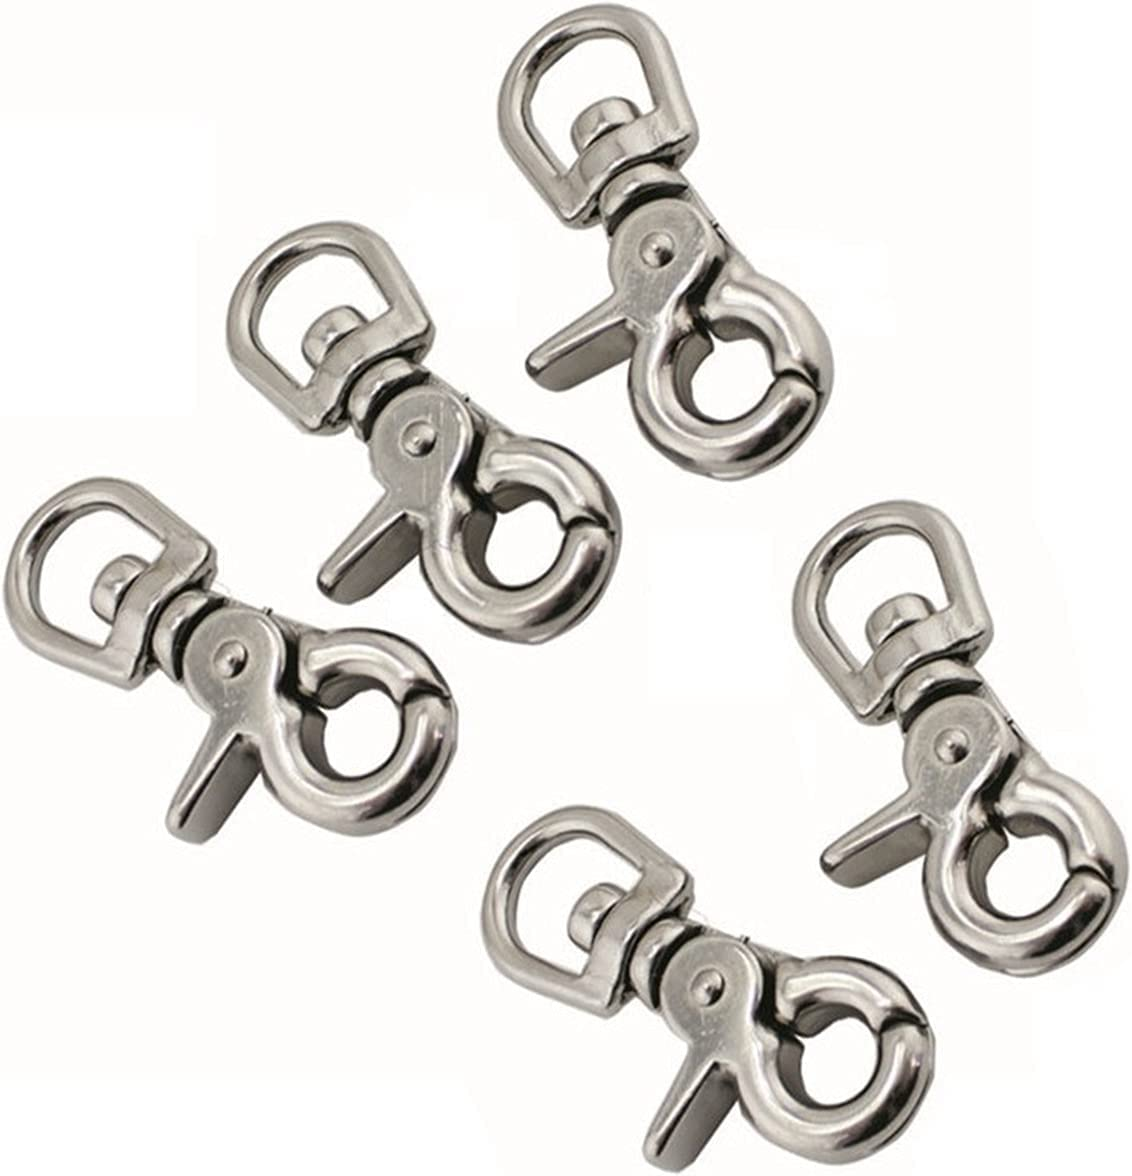 YDSHOLL 5PCS Stainless Steel 316 Max 42% OFF Trigger latest Spring Swivel Snap Eye